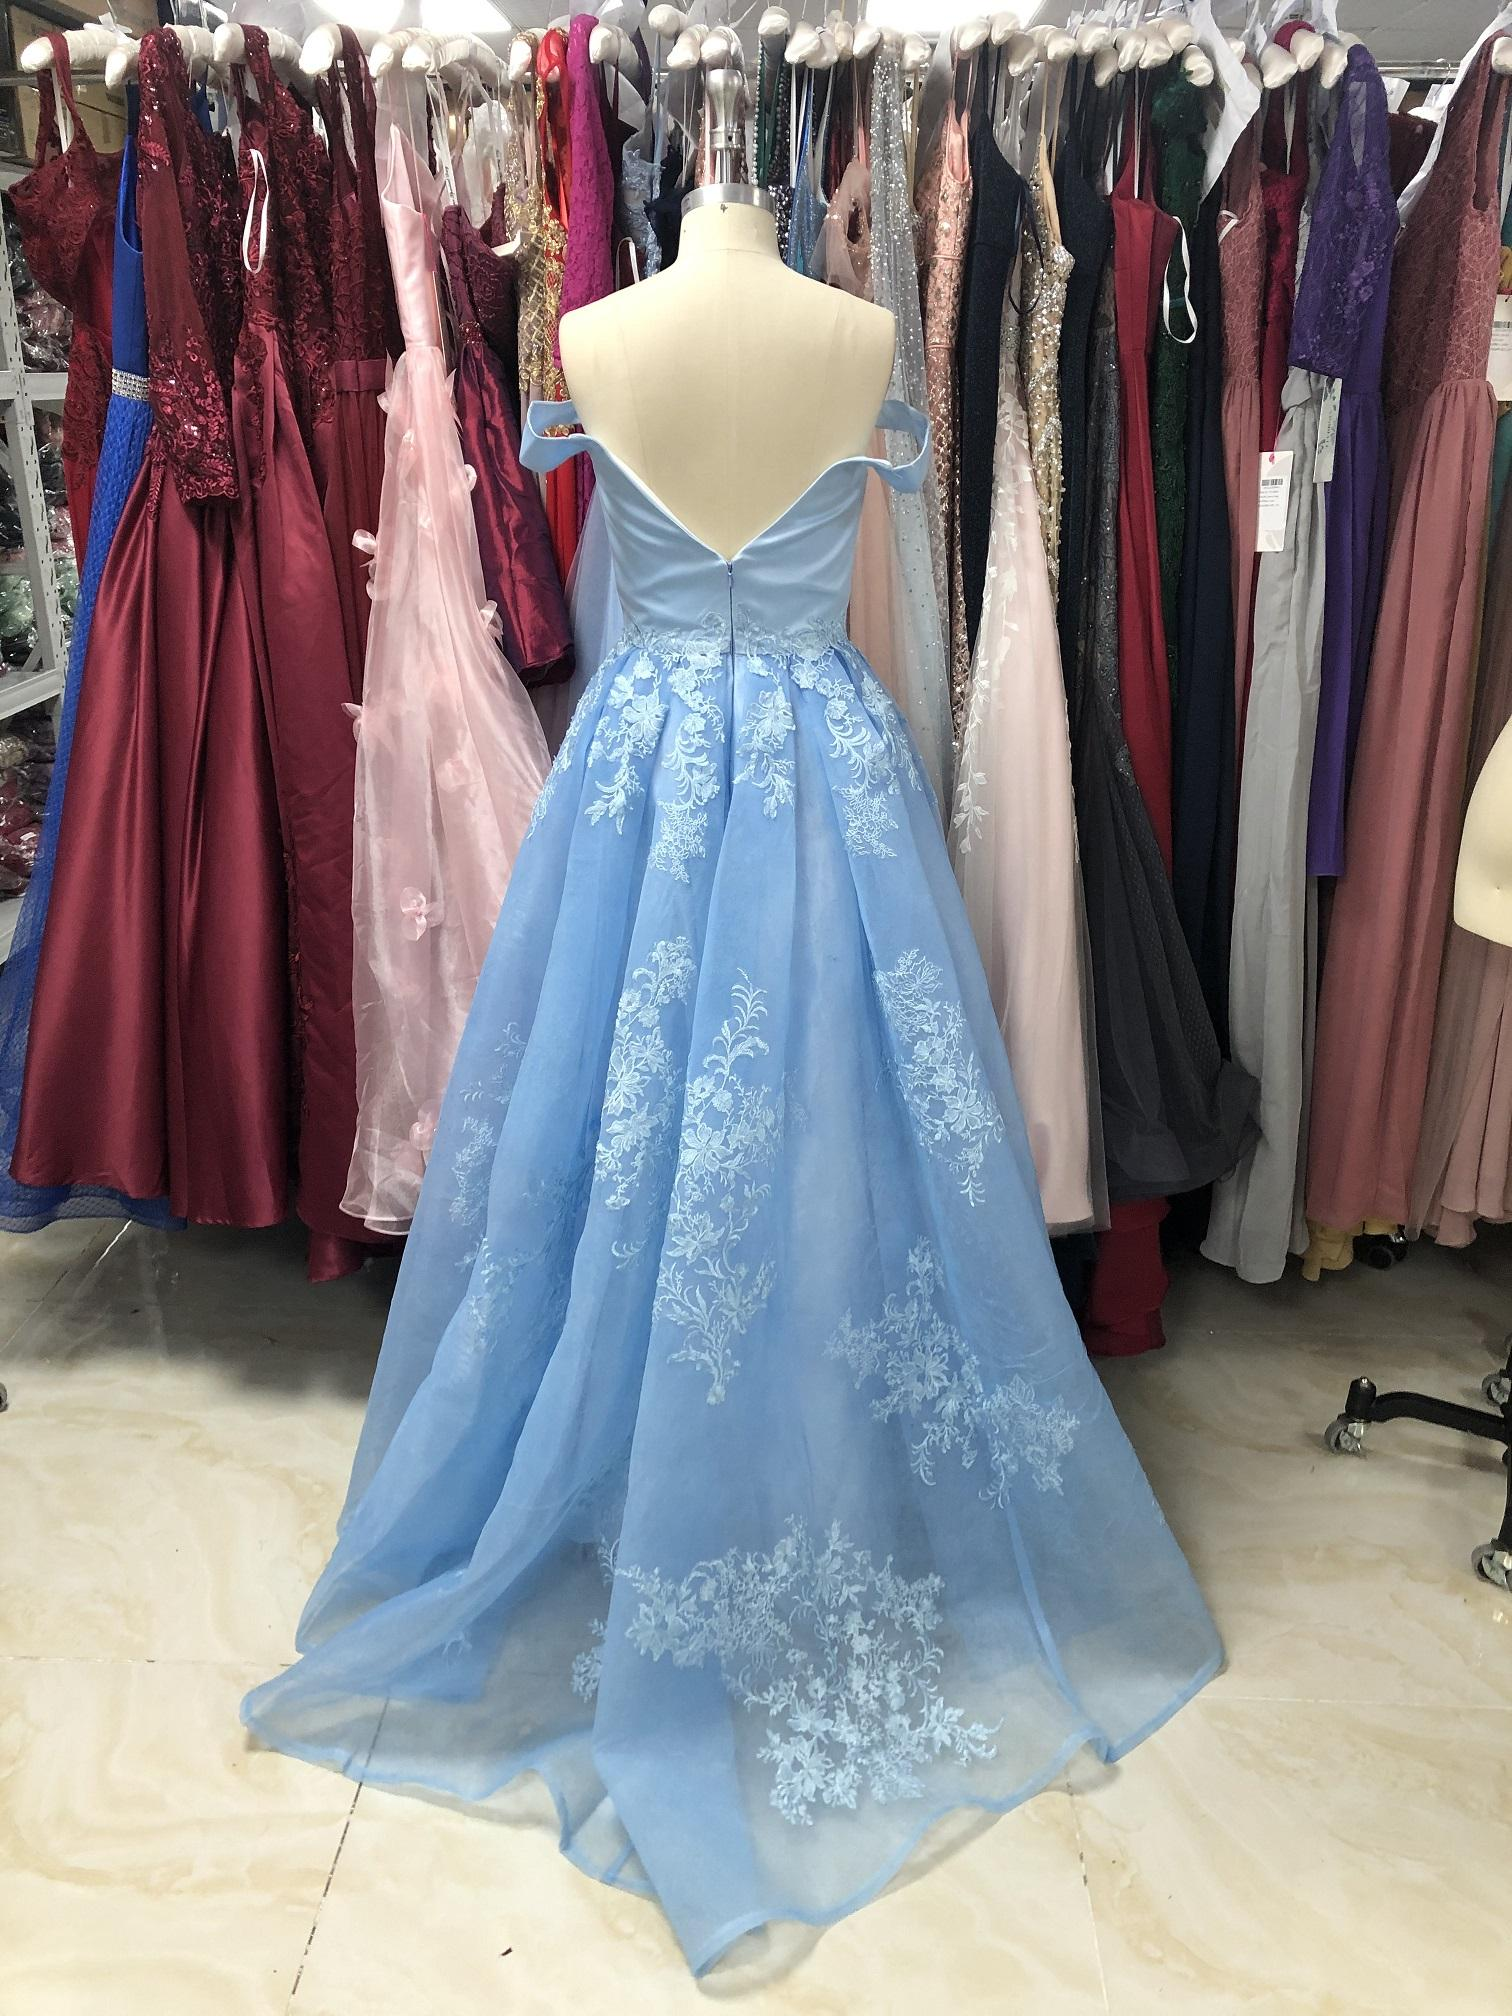 ELPR0000685 Wholesale 2020 Wedding Evening Ball Gowns Dress Lace Appliqued Ball Gown Evening Dress